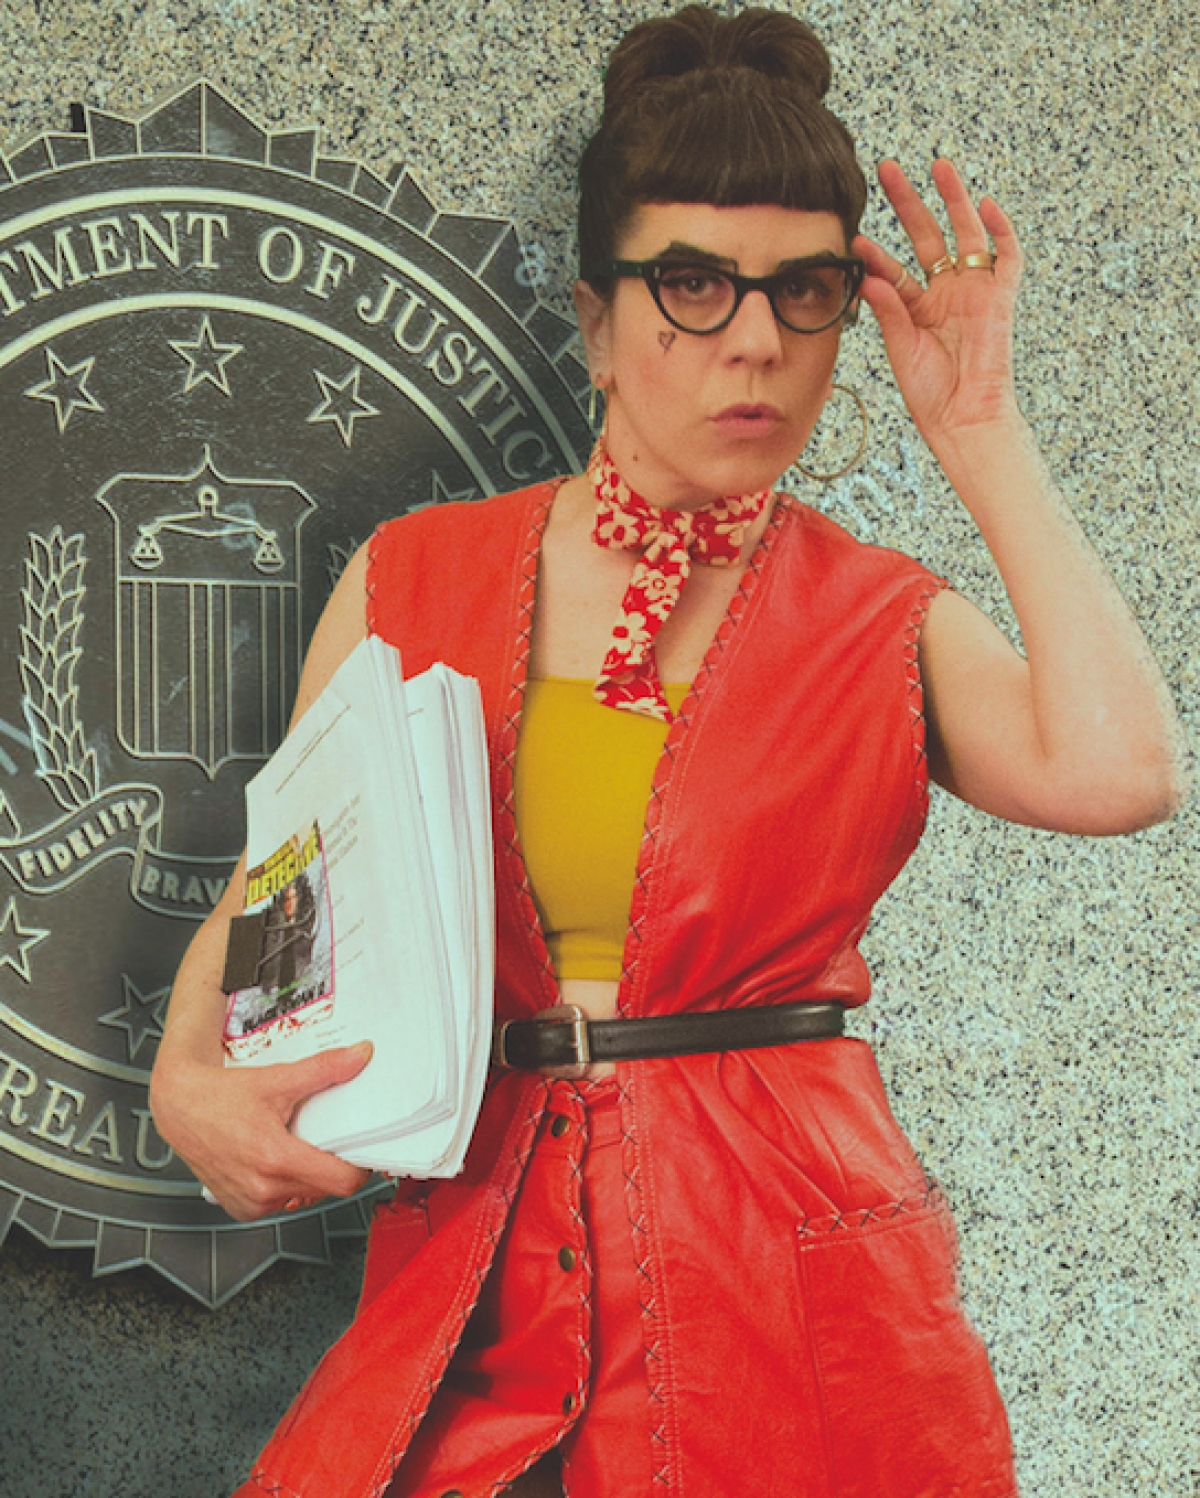 Liz, wearing a red dress, in front of the Department of Justice, holding her play